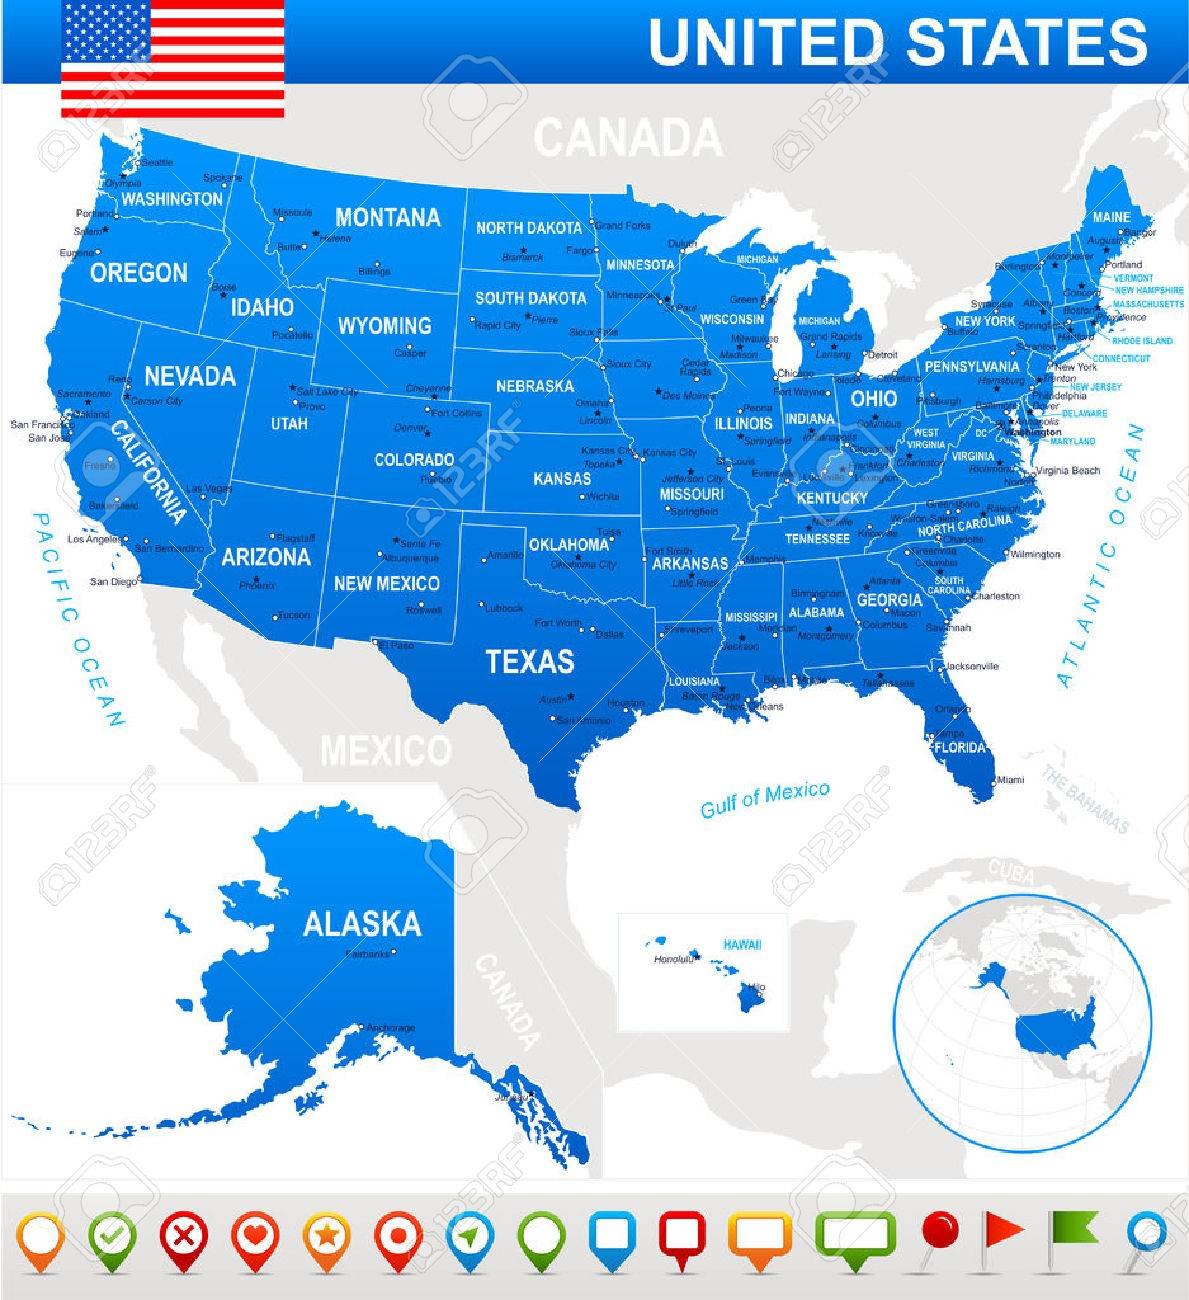 United States USA - Map, Flag And Navigation Icons - Illustration ...